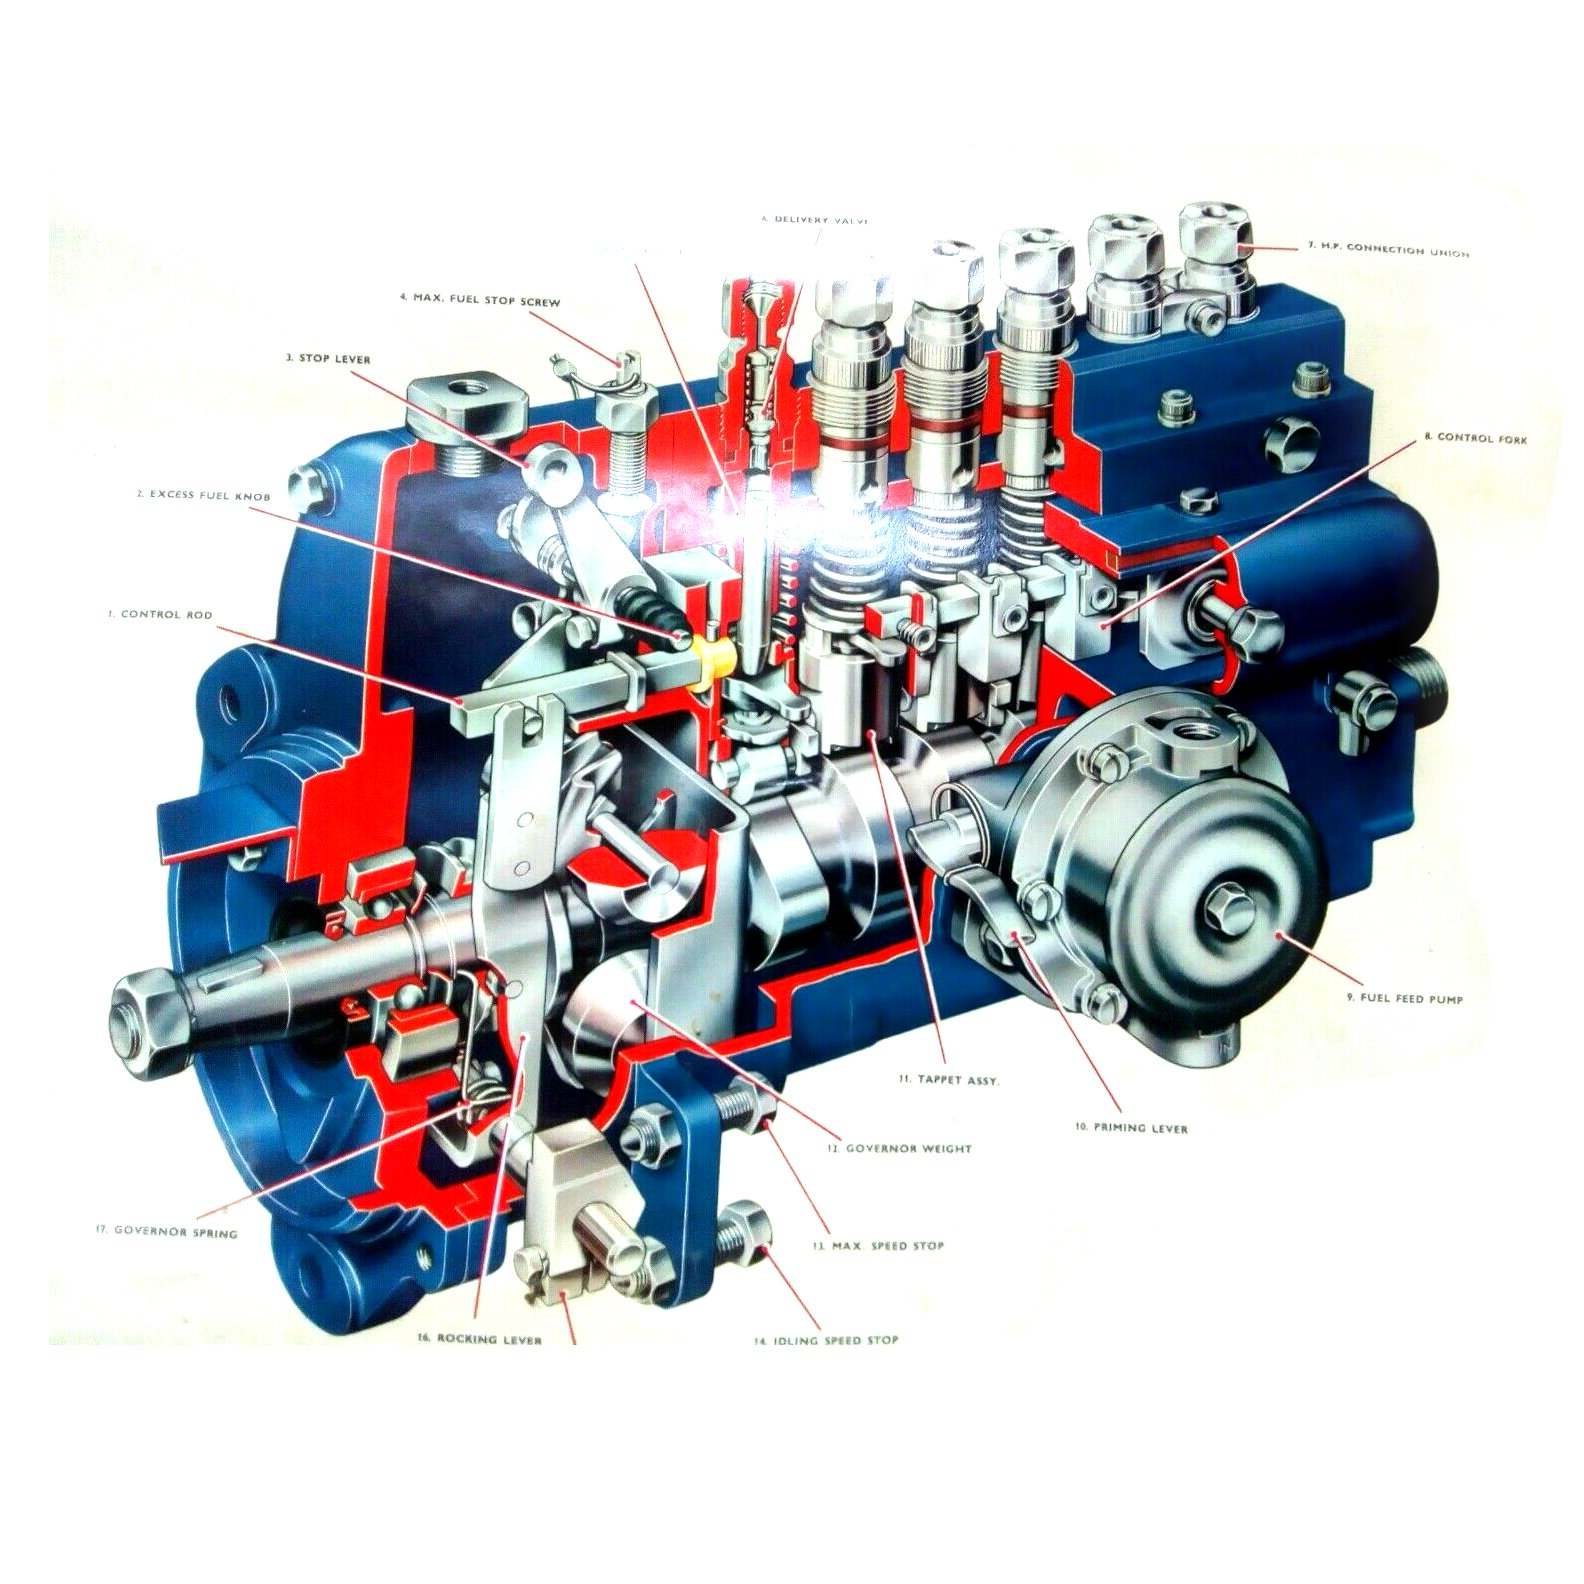 Complete overhaul kit for Simms Minimec 4 cylinder diesel injection pumps